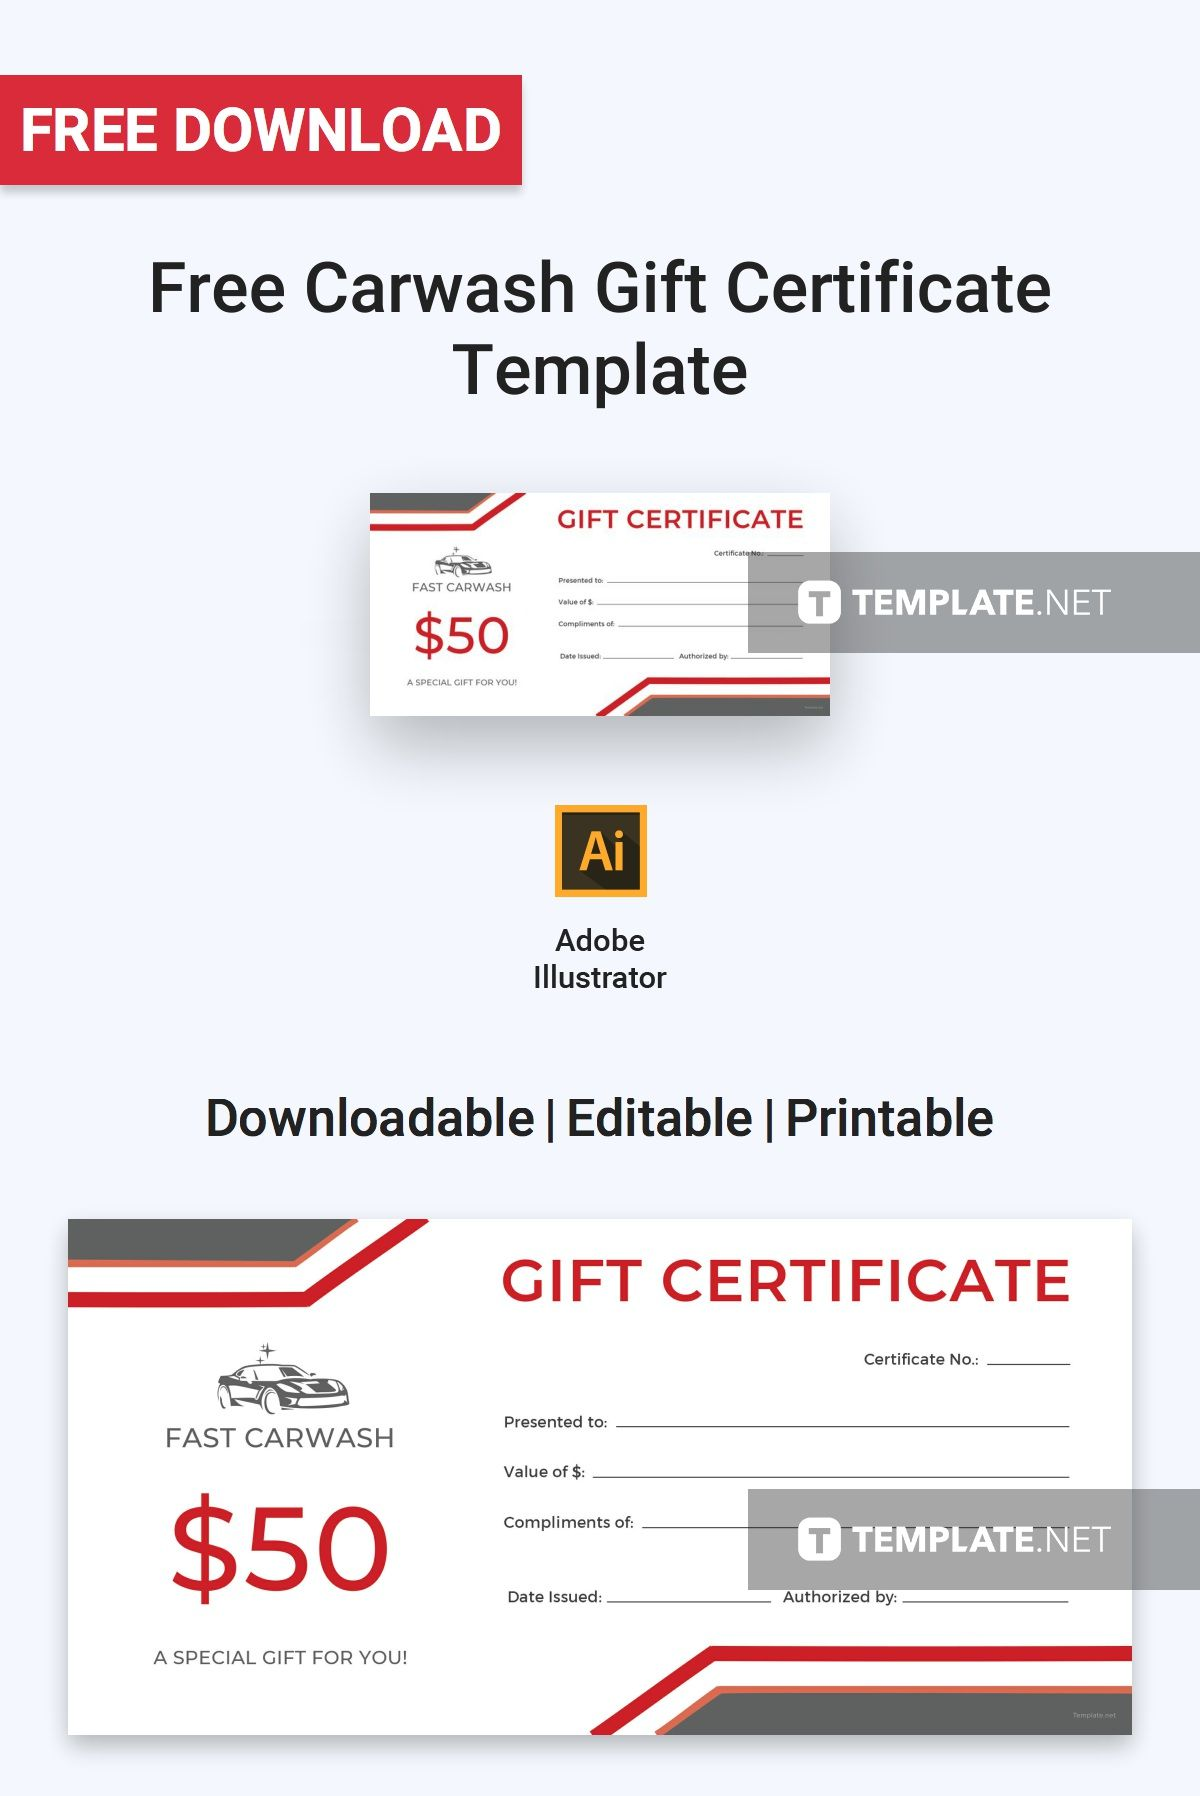 Free Carwash Gift Certificate Template Pdf Word Psd Apple Pages Google Docs Illustrator Publisher Printable Gift Certificate Gift Card Template Gift Certificate Template